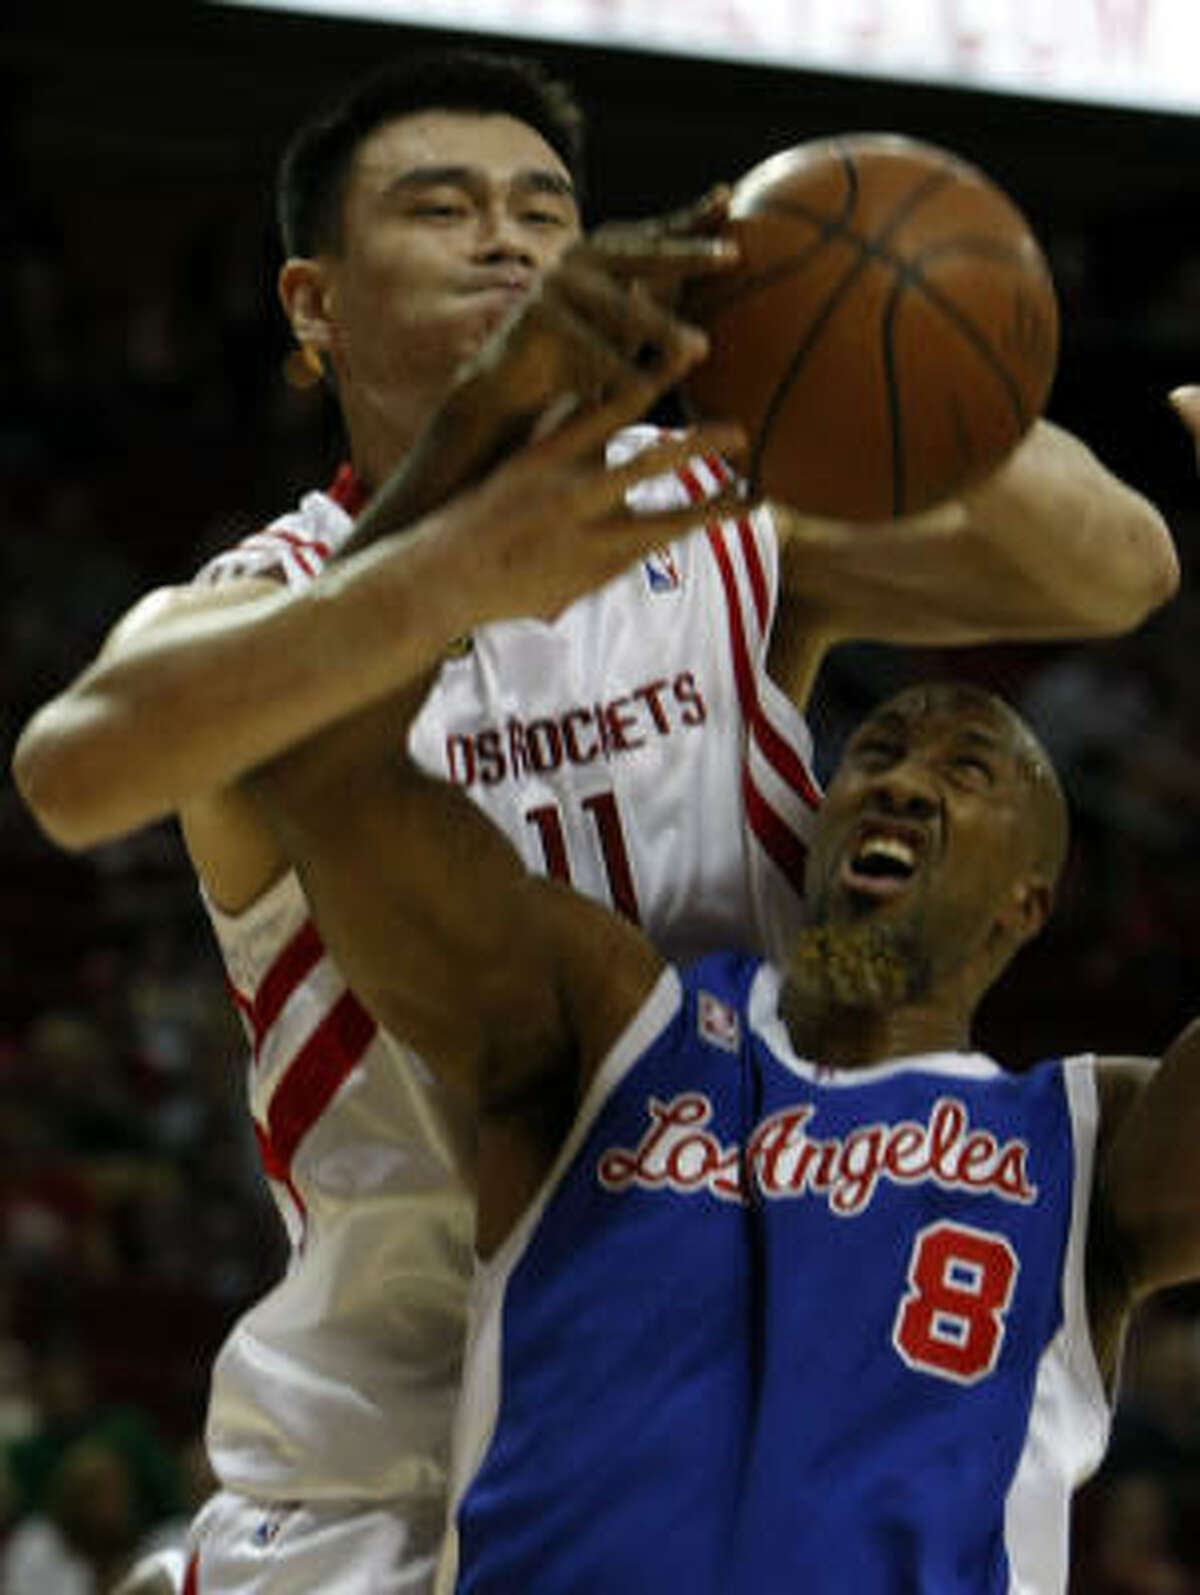 Yao Ming, top, battles Clippers forward Brian Skinner for a loose ball in the second quarter.